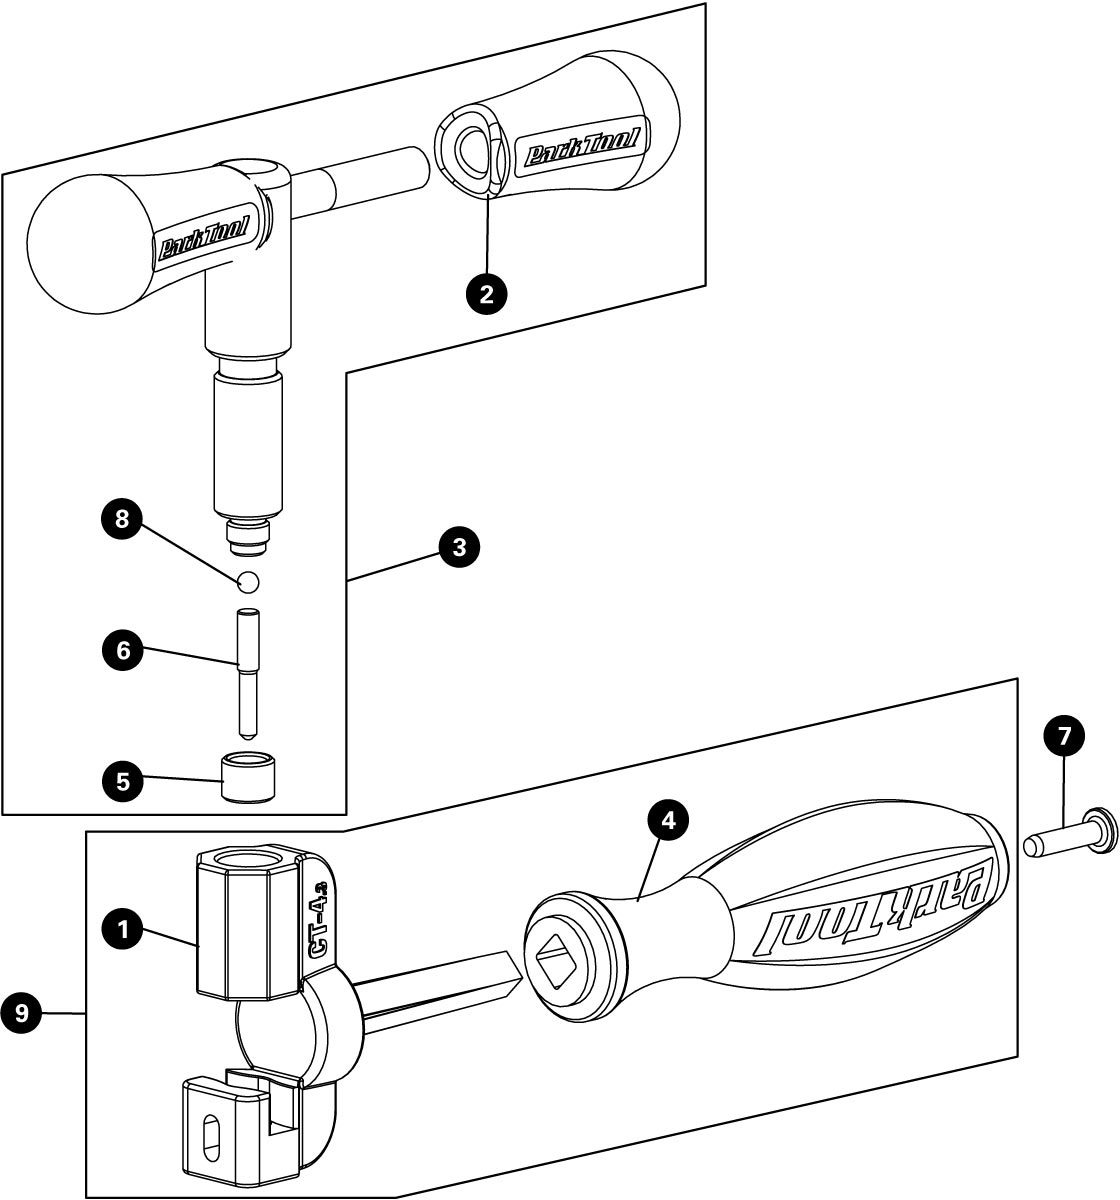 Parts diagram for CT-4.3 Master Chain Tool with Peening Anvil, click to enlarge